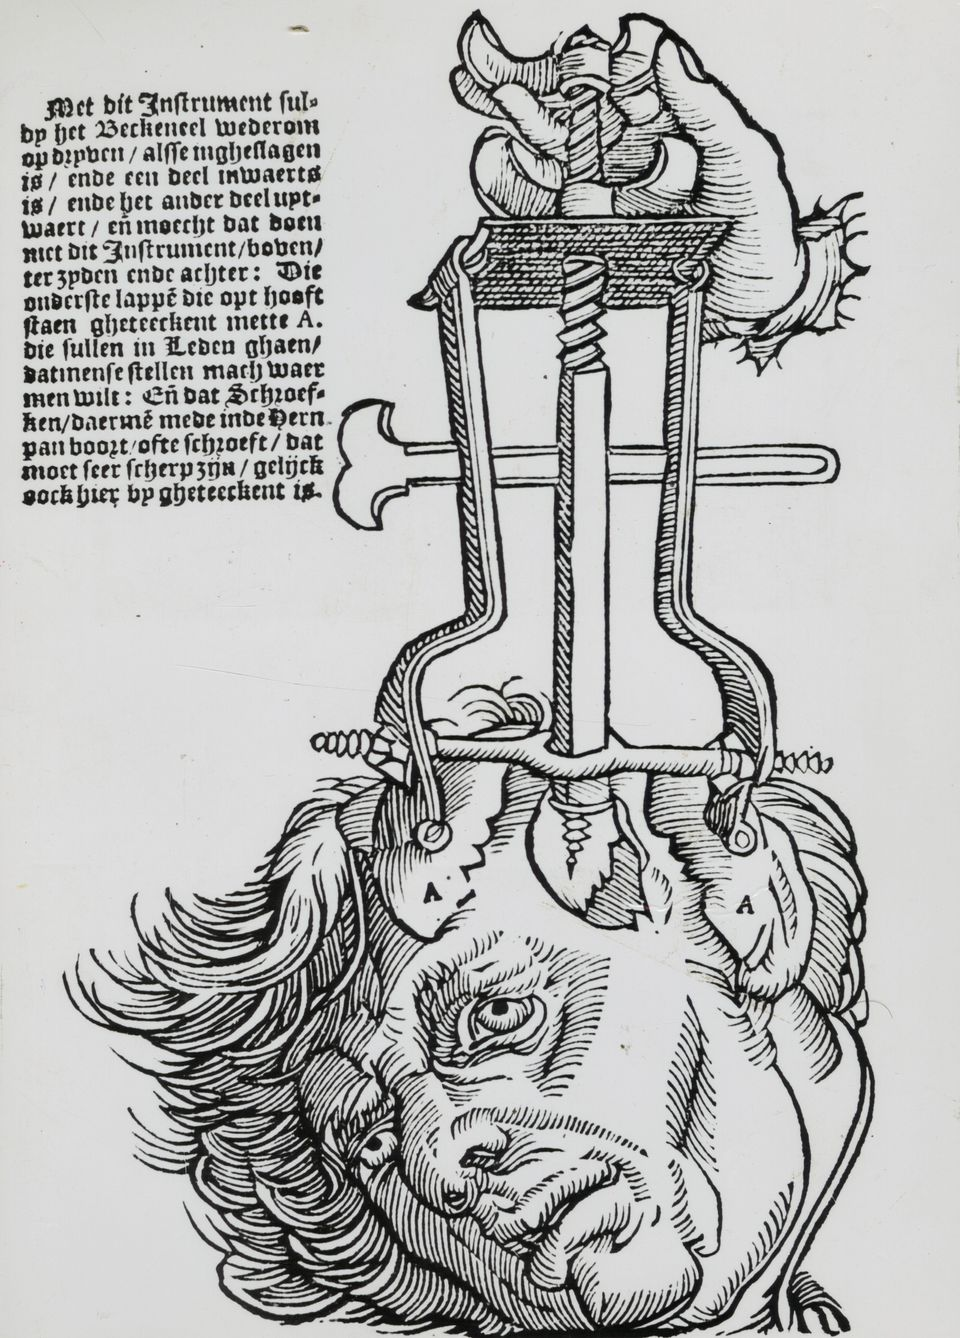 Trephination elevator for removing fragments of broken skull. Woodcut from a book on field surgery, 1593.